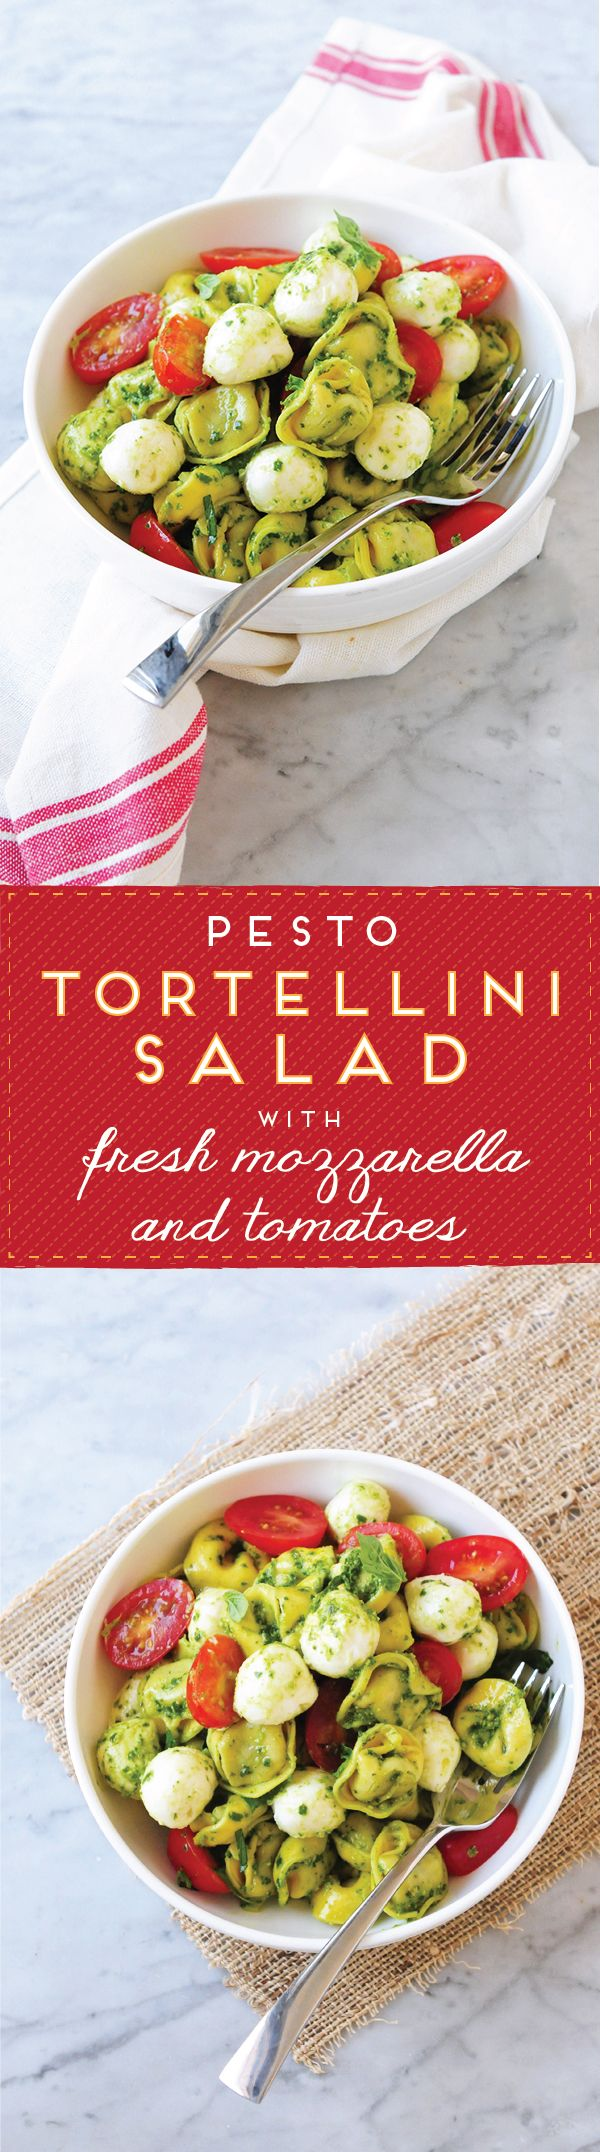 Recipe for Pesto Tortellini Salad with Fresh Mozzarella & Grape Tomatoes | DeLallo Recipes